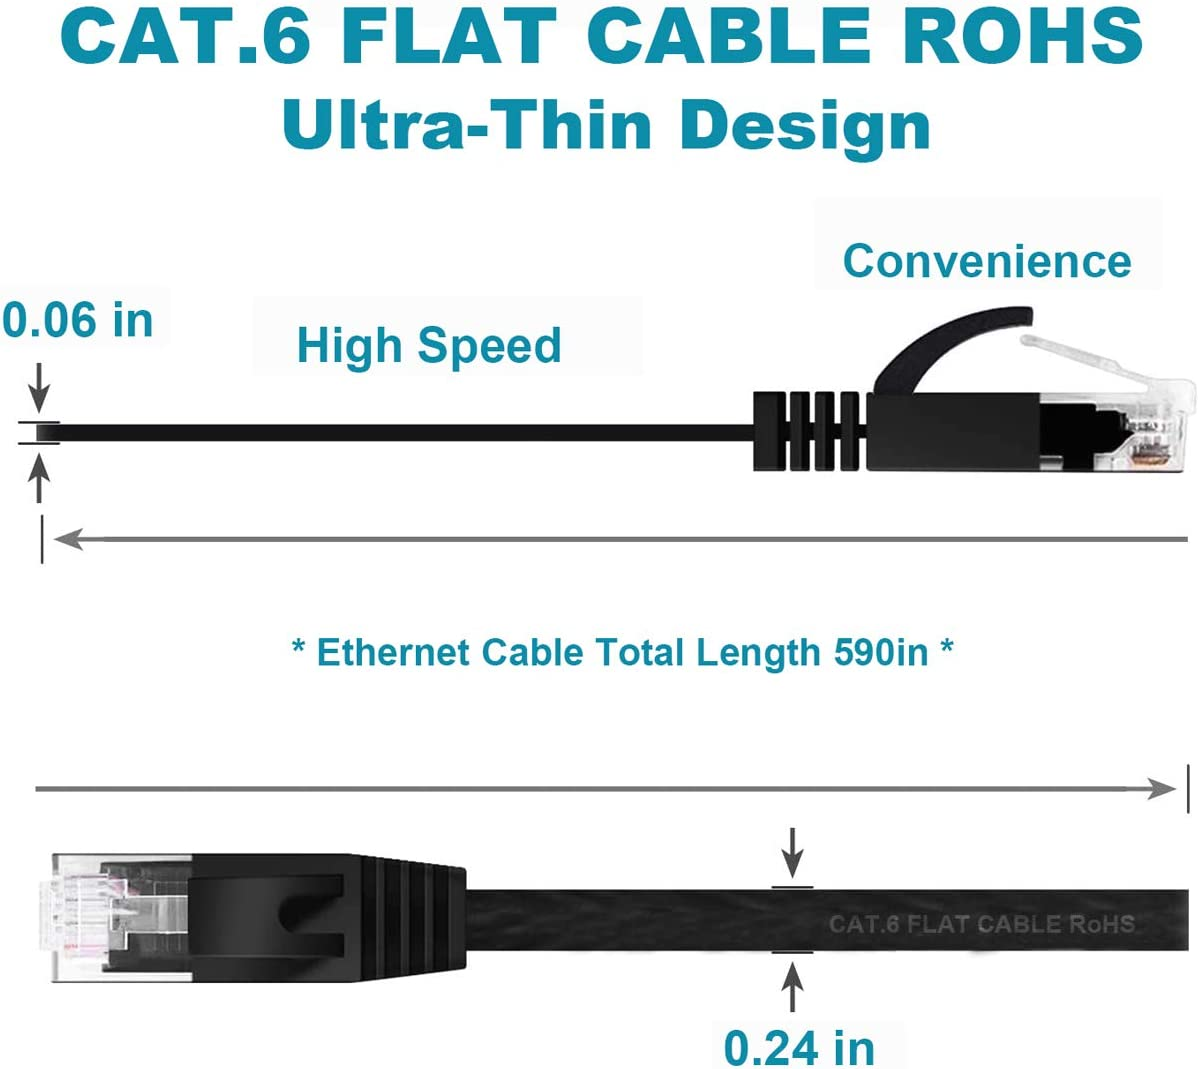 Flat Wire LAN Rj45 High Speed Internet Network Cable Slim with Clips Cat 6 Ethernet Cable 50 ft Black Faster Than Cat5e,Cat5 with Snagless Connectors for PS4,Xbox one,Switch Boxes,Modem,Router